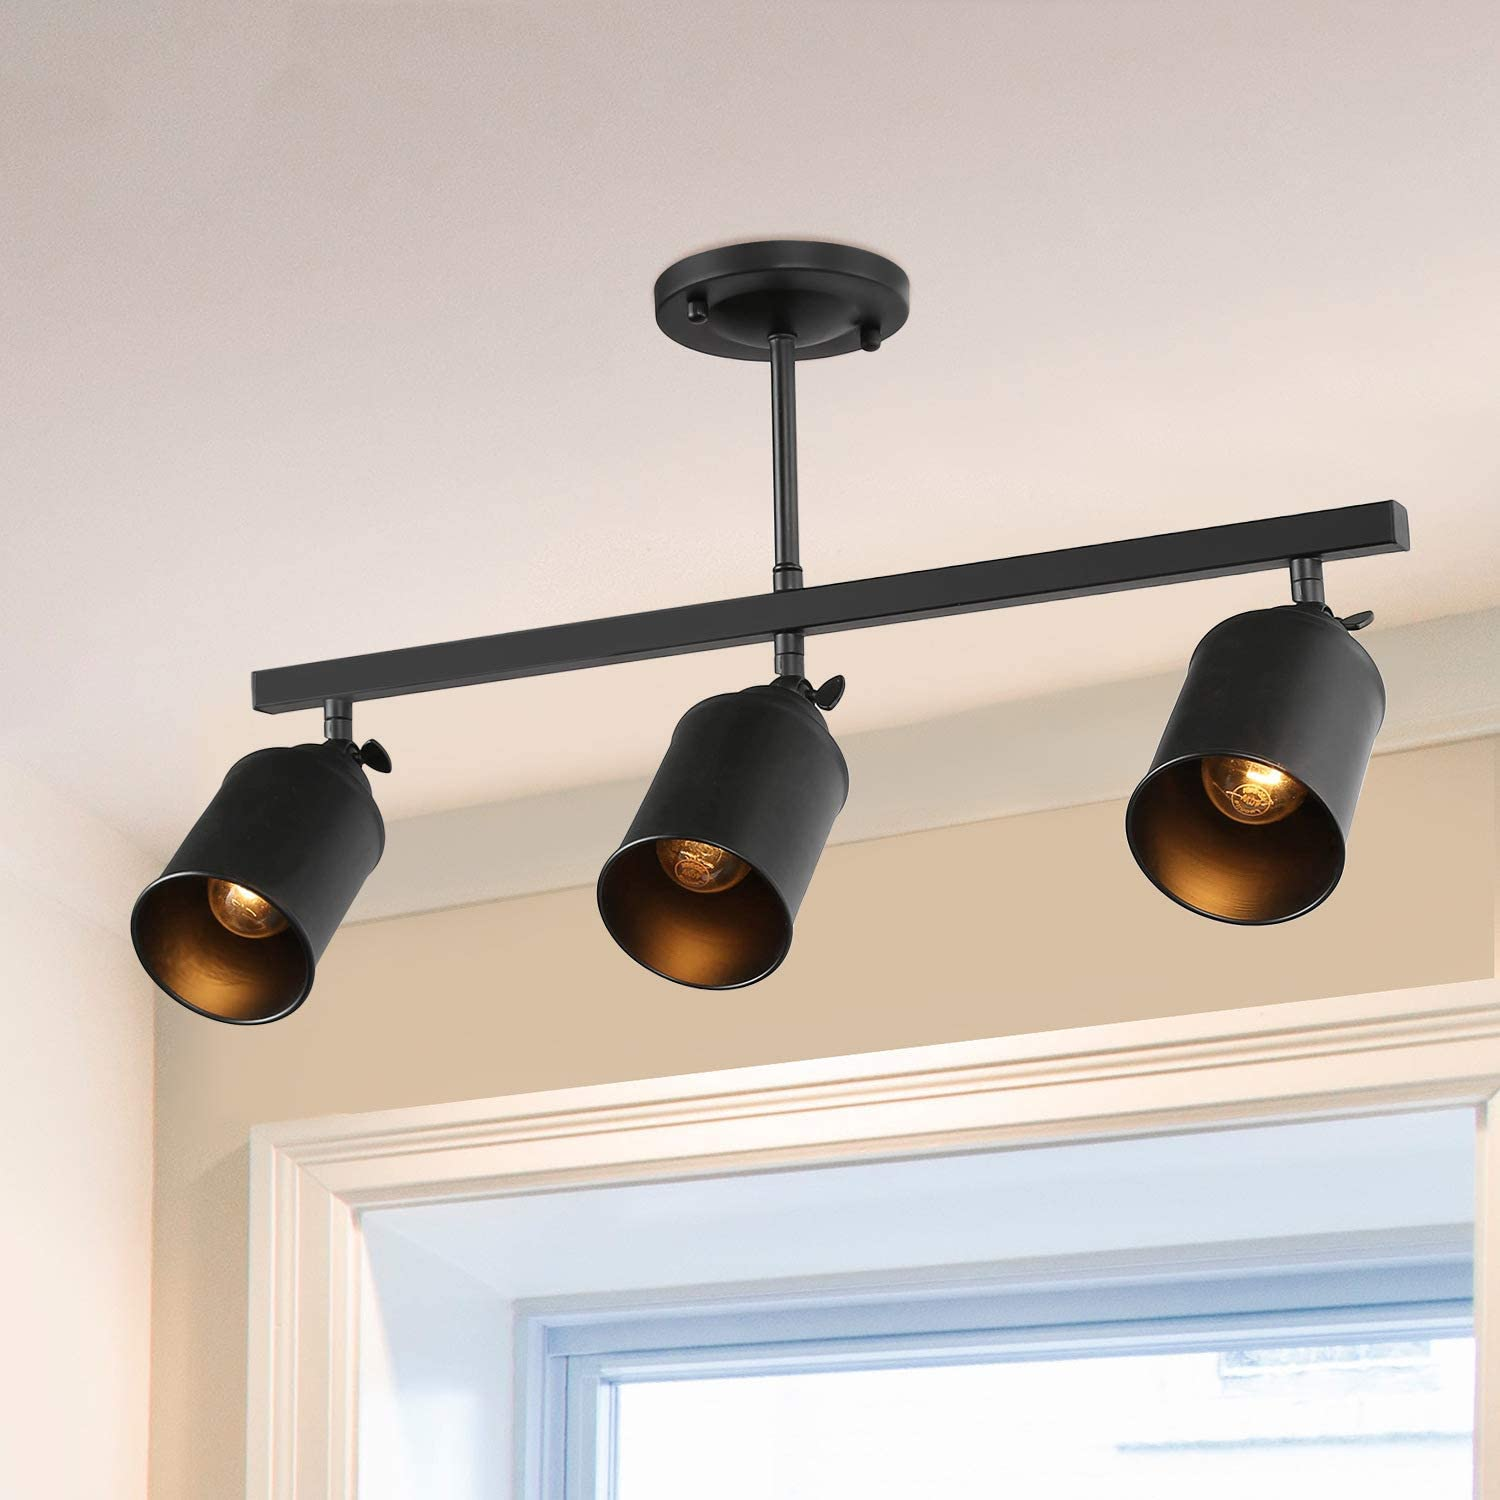 LNC 3-Light Track Lighting with Ceil Max 50% OFF Industrial Washington Mall Adjustable Heads